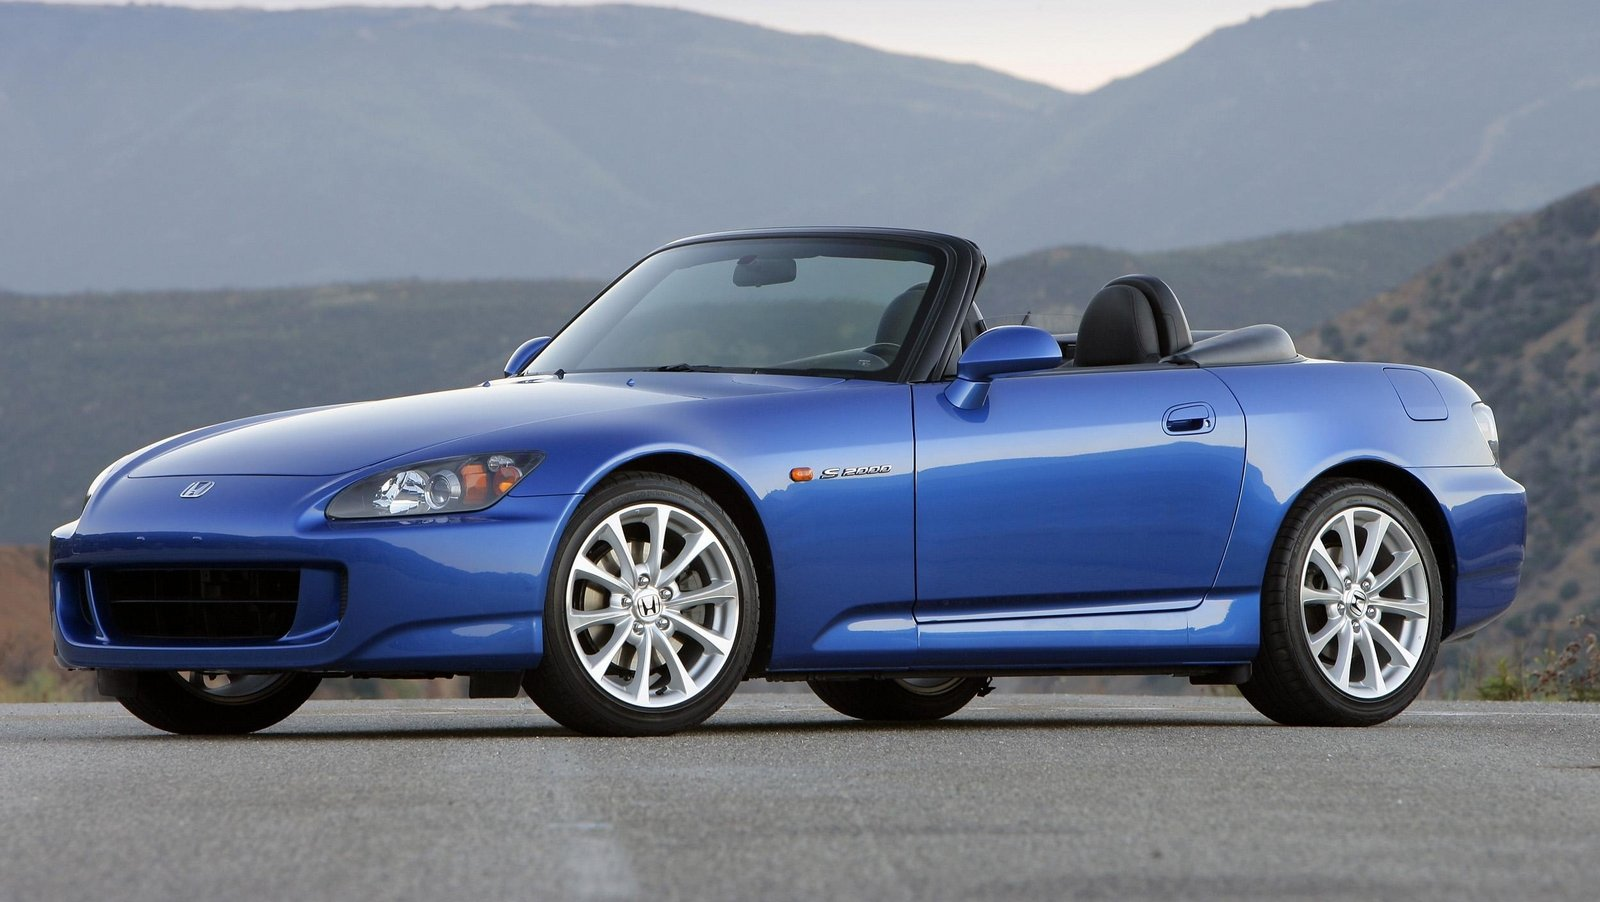 Honda S2000 Will Be Revived As Mazda MX-5 Competitor